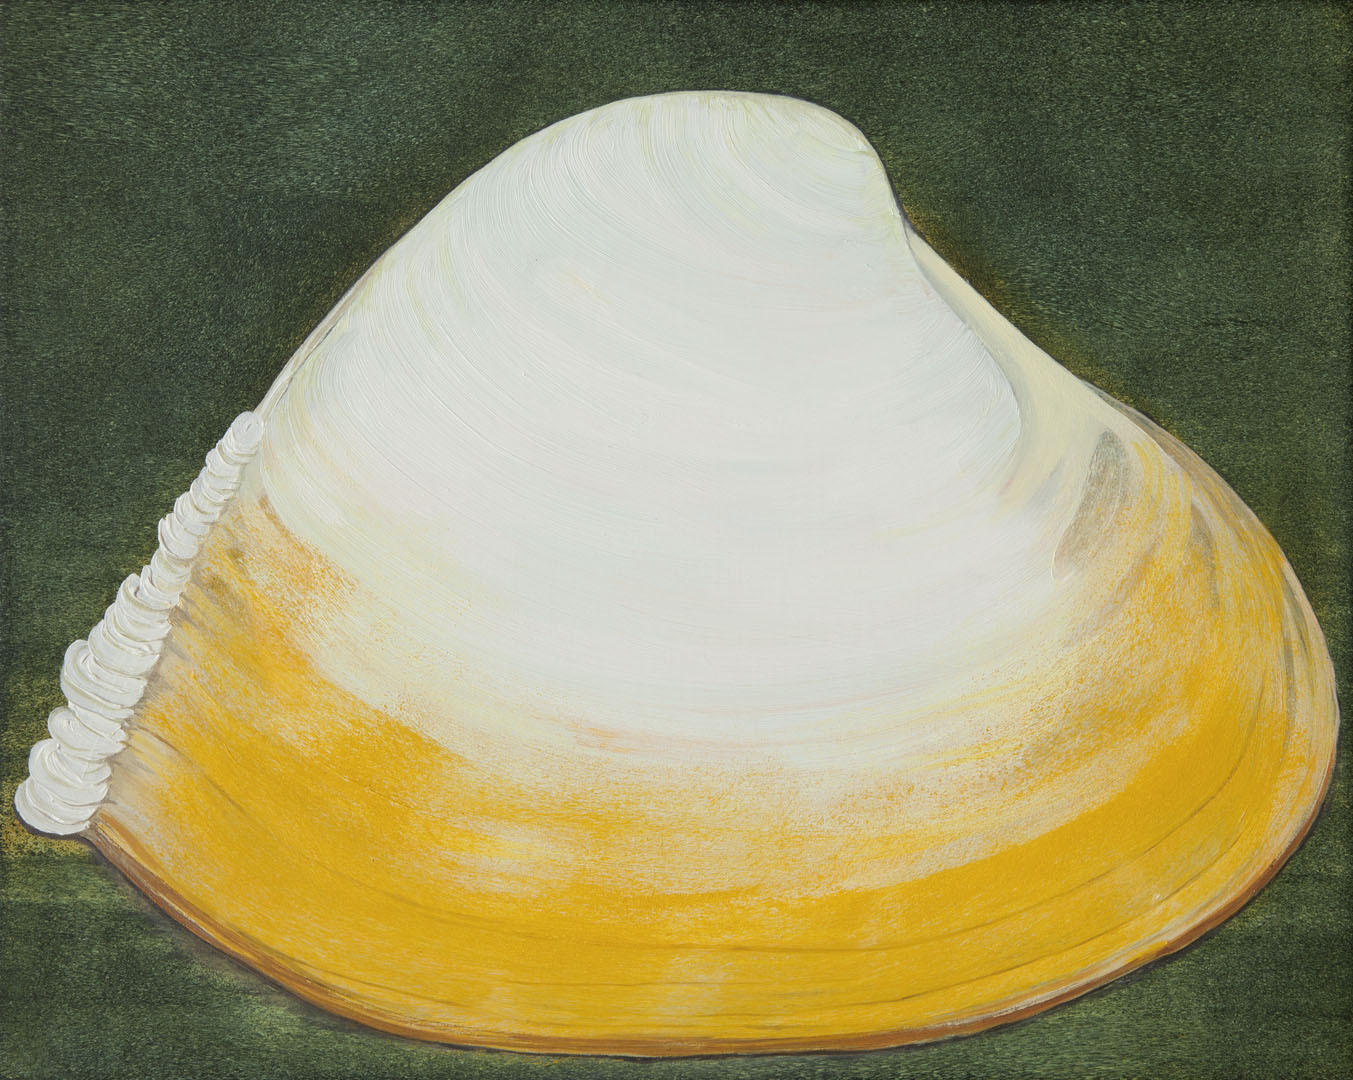 Bennie Reilly, Curled Clam, oil on canvas, 20x25cm